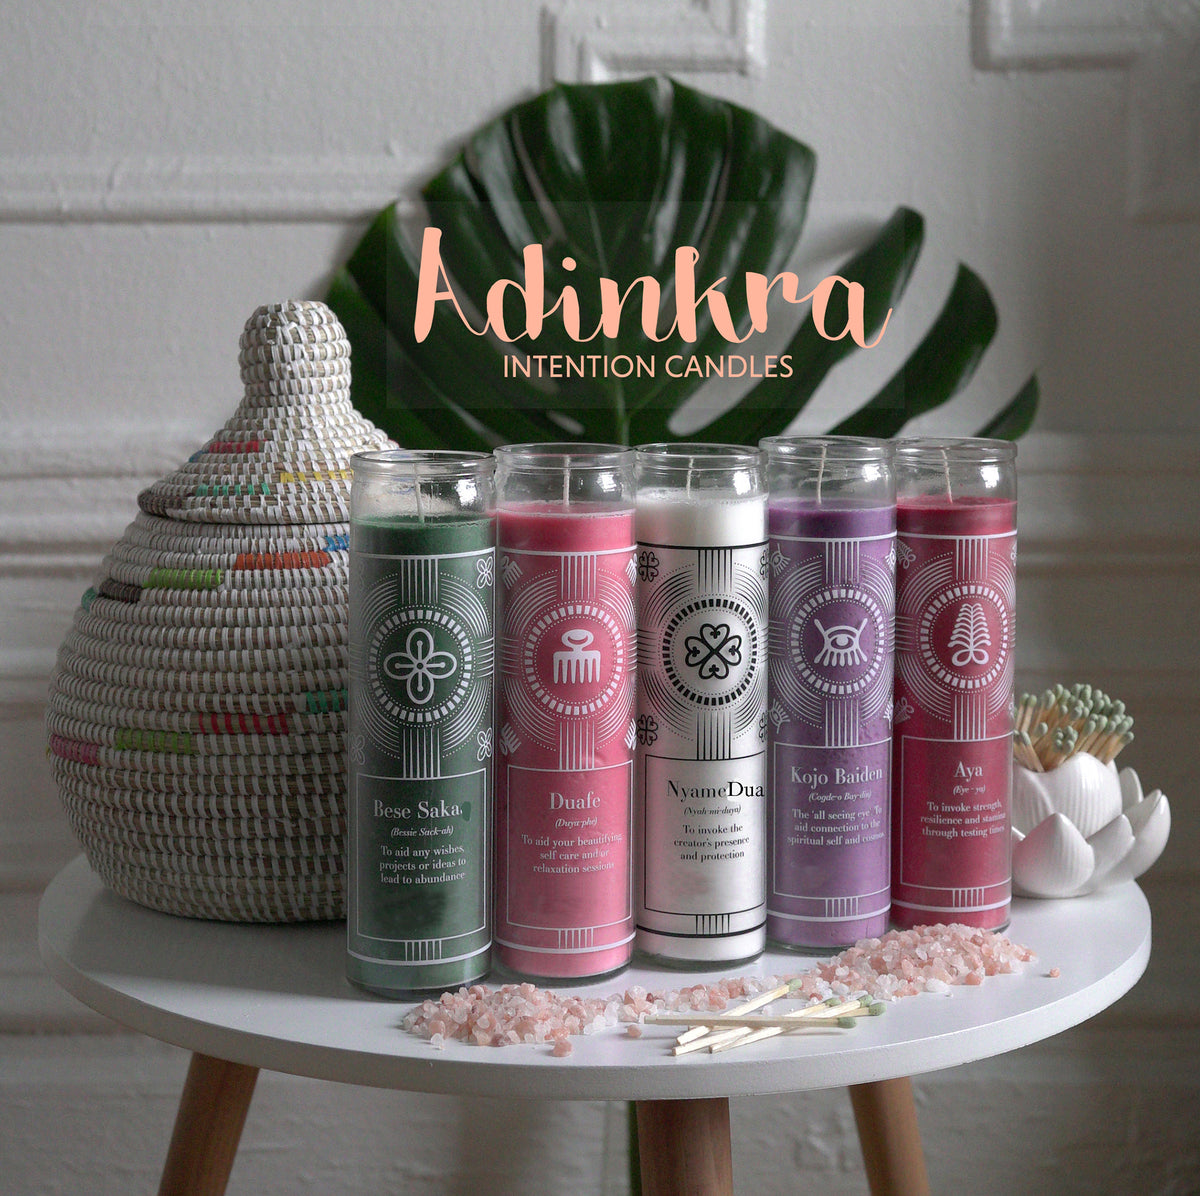 Full size collection - Adinkra Intention Candles